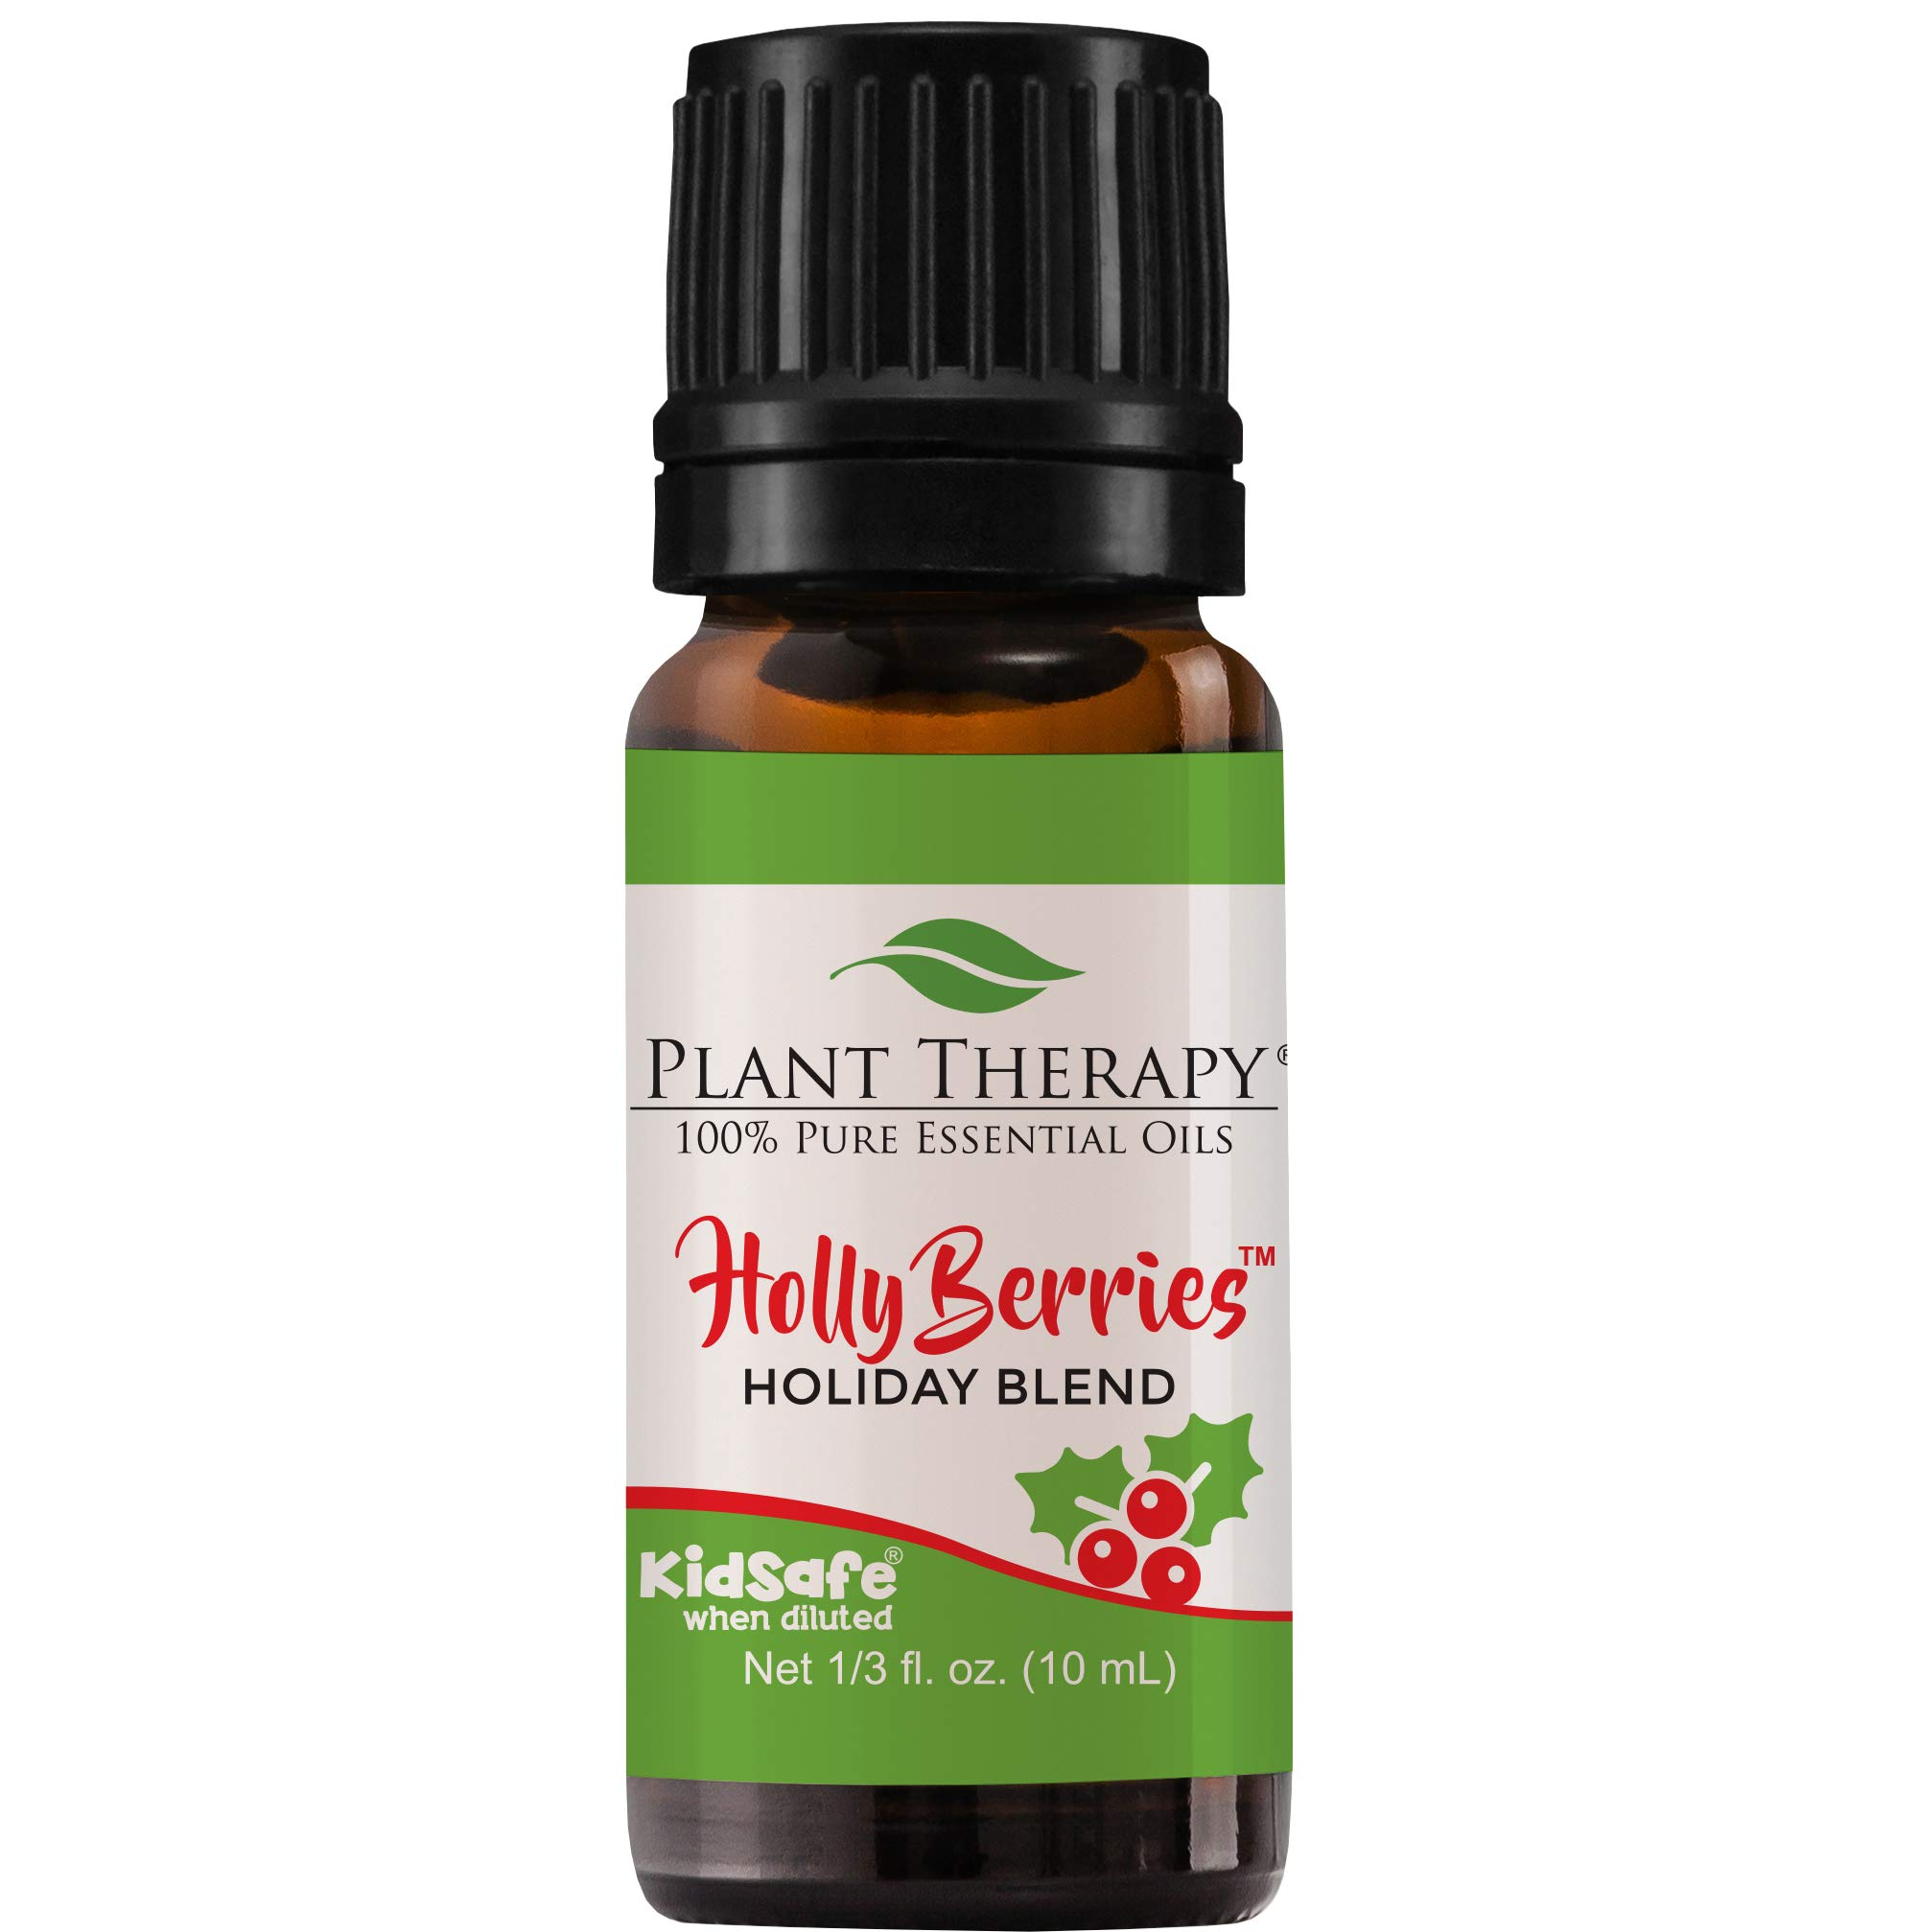 Plant Therapy Essential Oil | Holly Berries Holiday Blend | 100% Pure, Undiluted, Natural Aromatherapy, Therapeutic Grade | 10 milliliter (⅓ ounce)